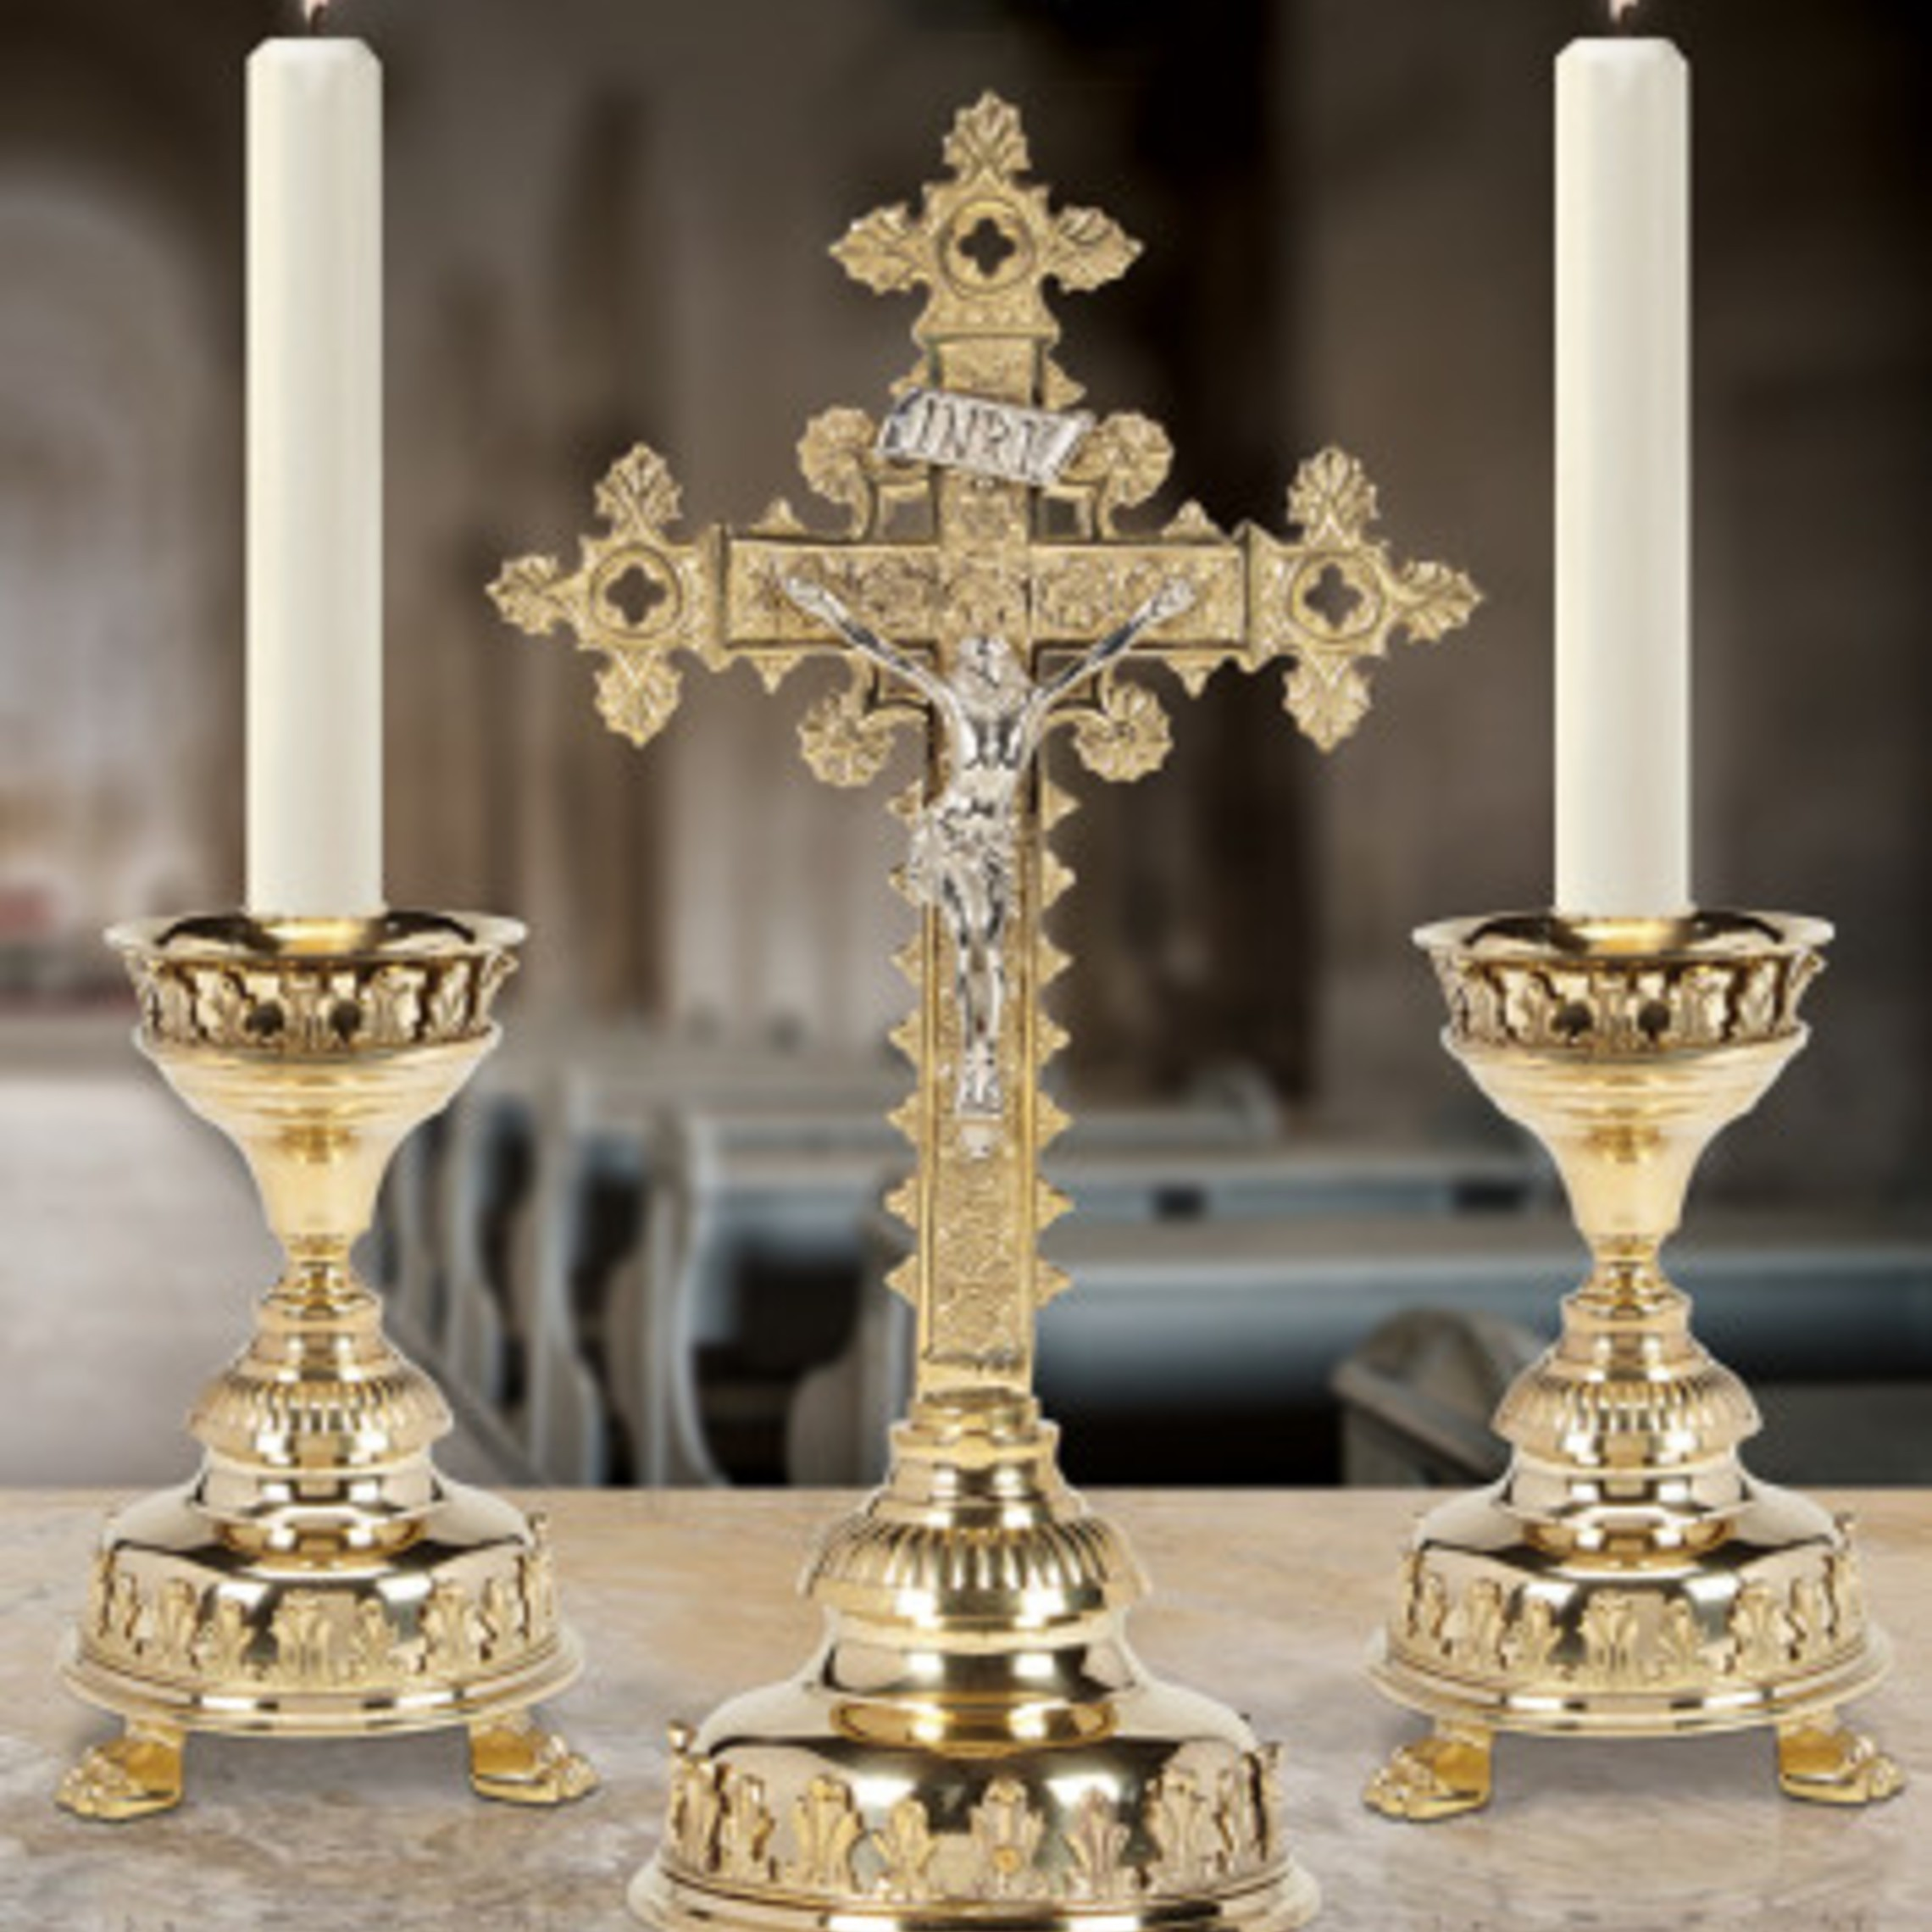 Discounted Altar Crucifix And Candlesticks K15